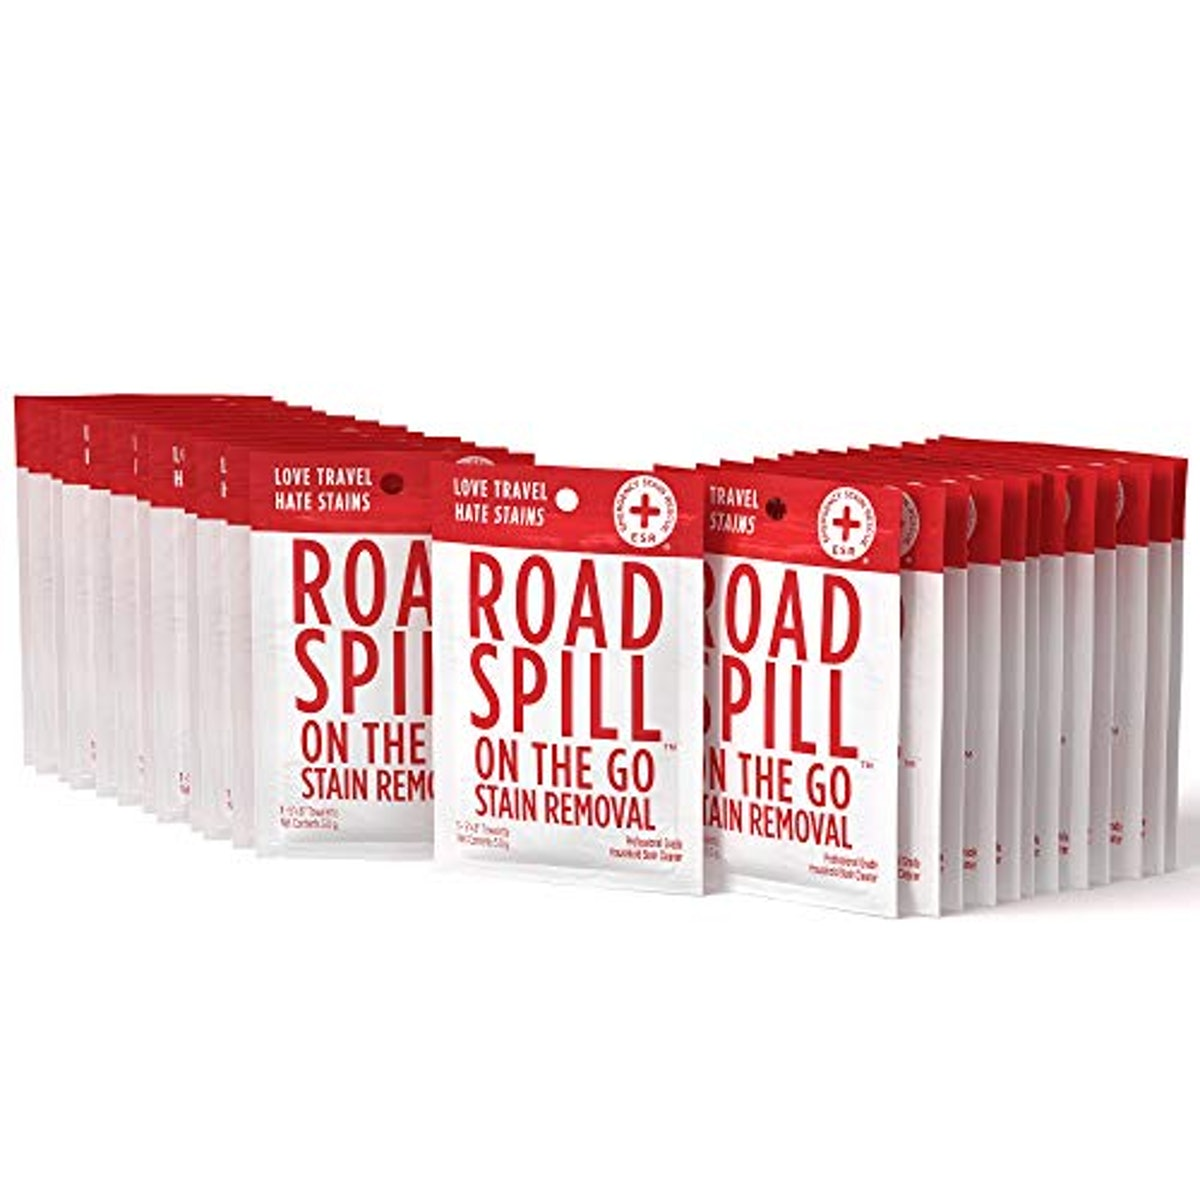 The Hate Stains Co Road Spill On the Go Stain Remover